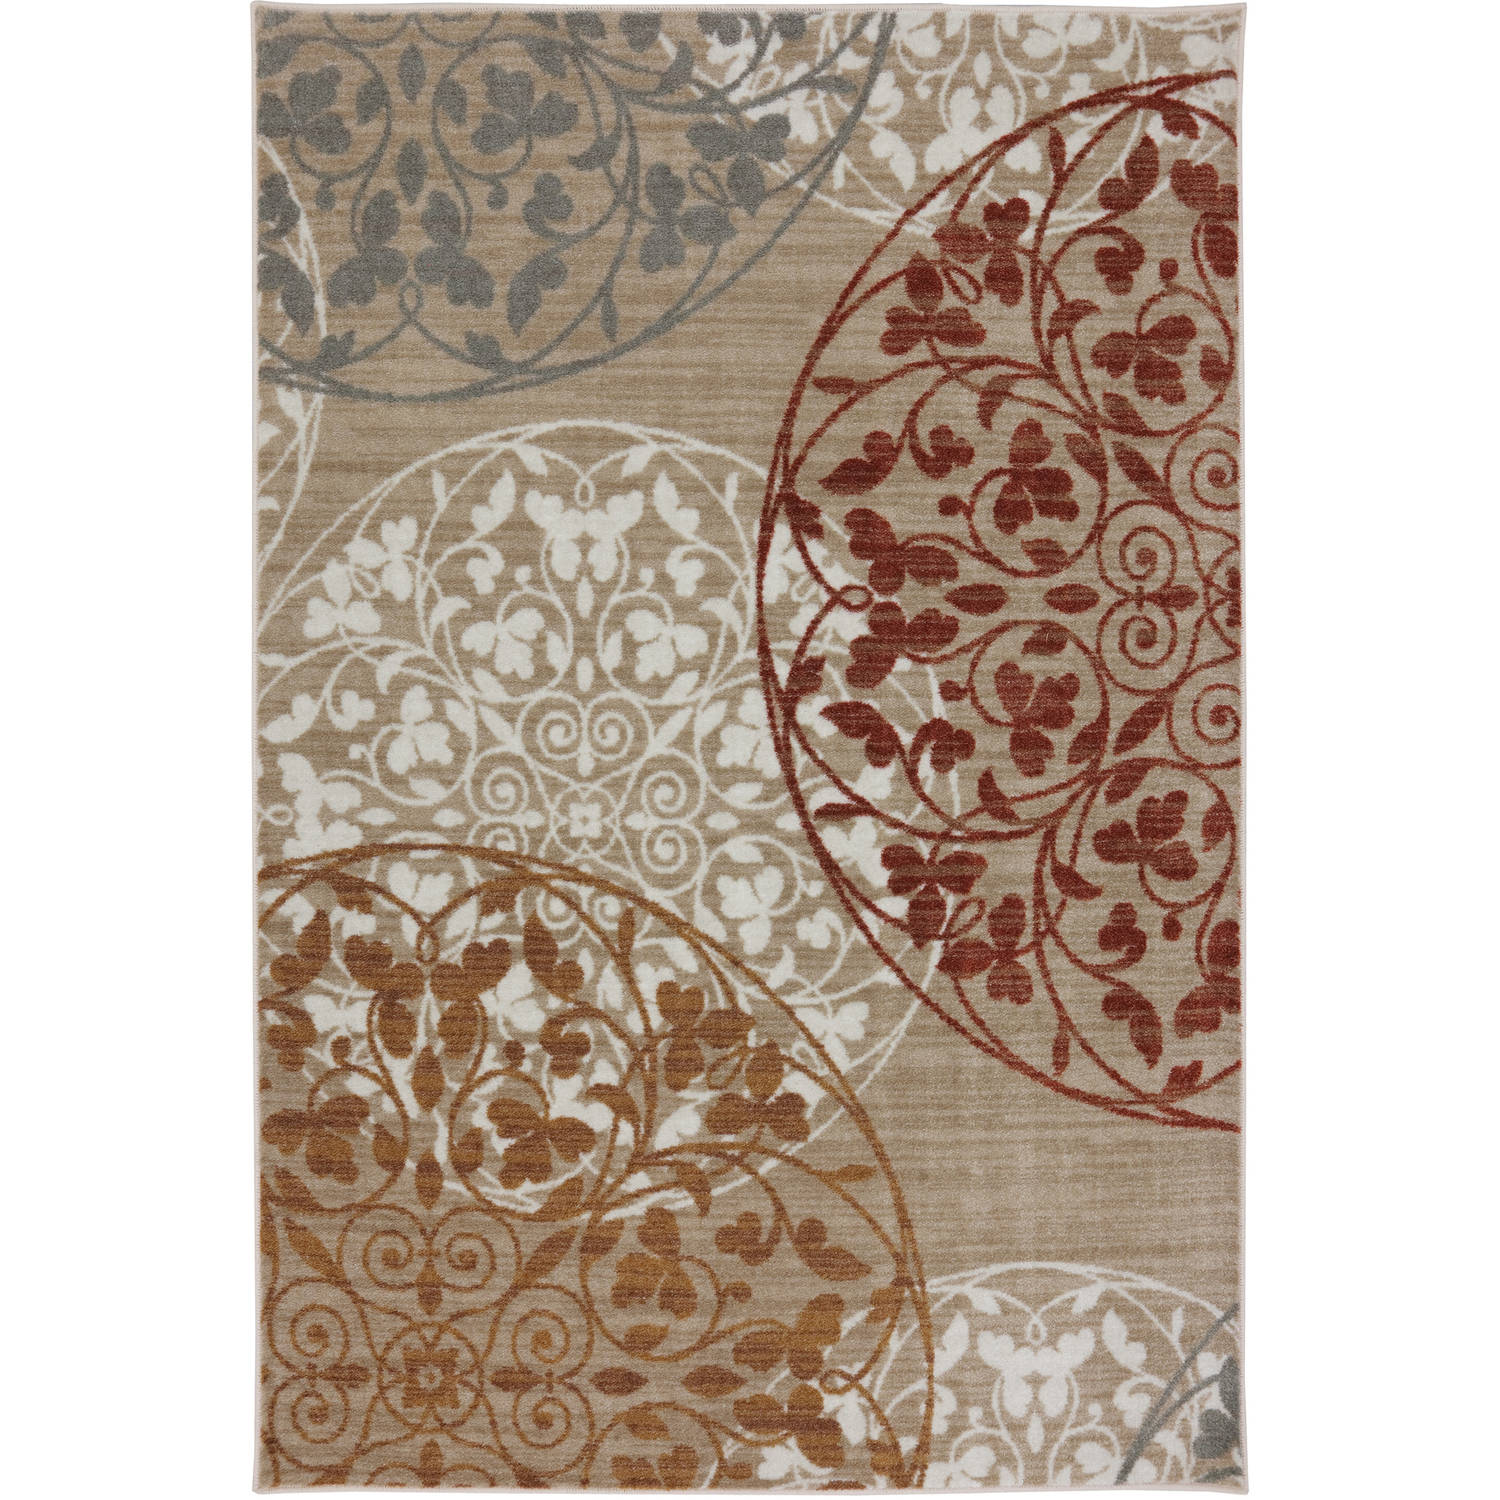 Mohawk Home Medallion Printed Area Rug by Generic